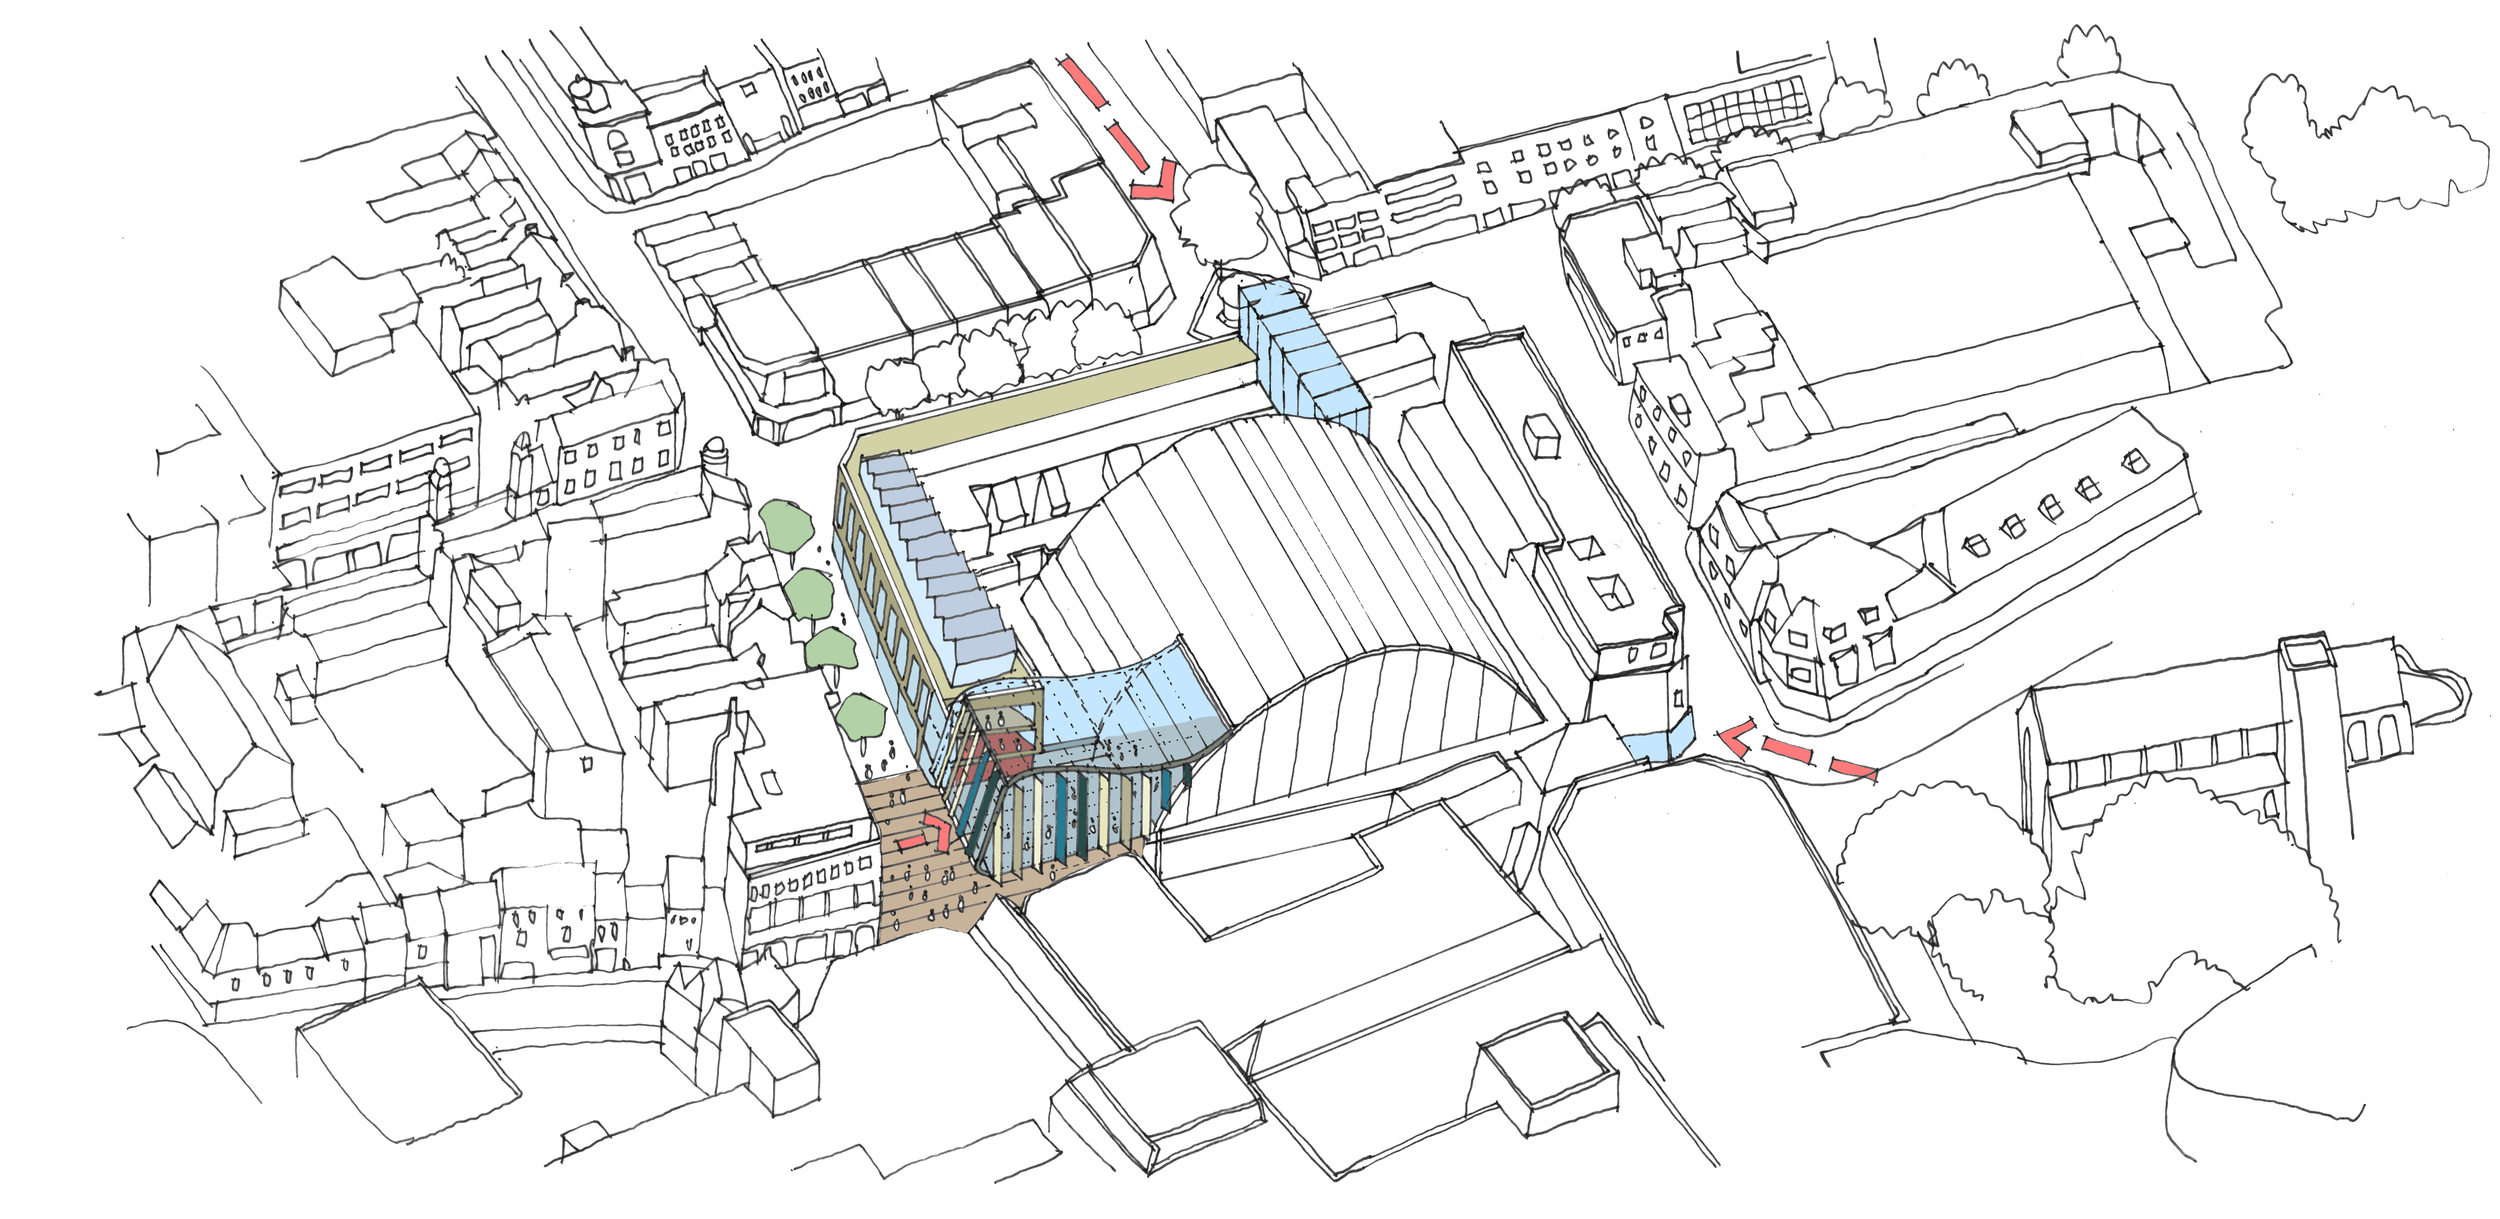 Vision for a new community on a former brownfield site